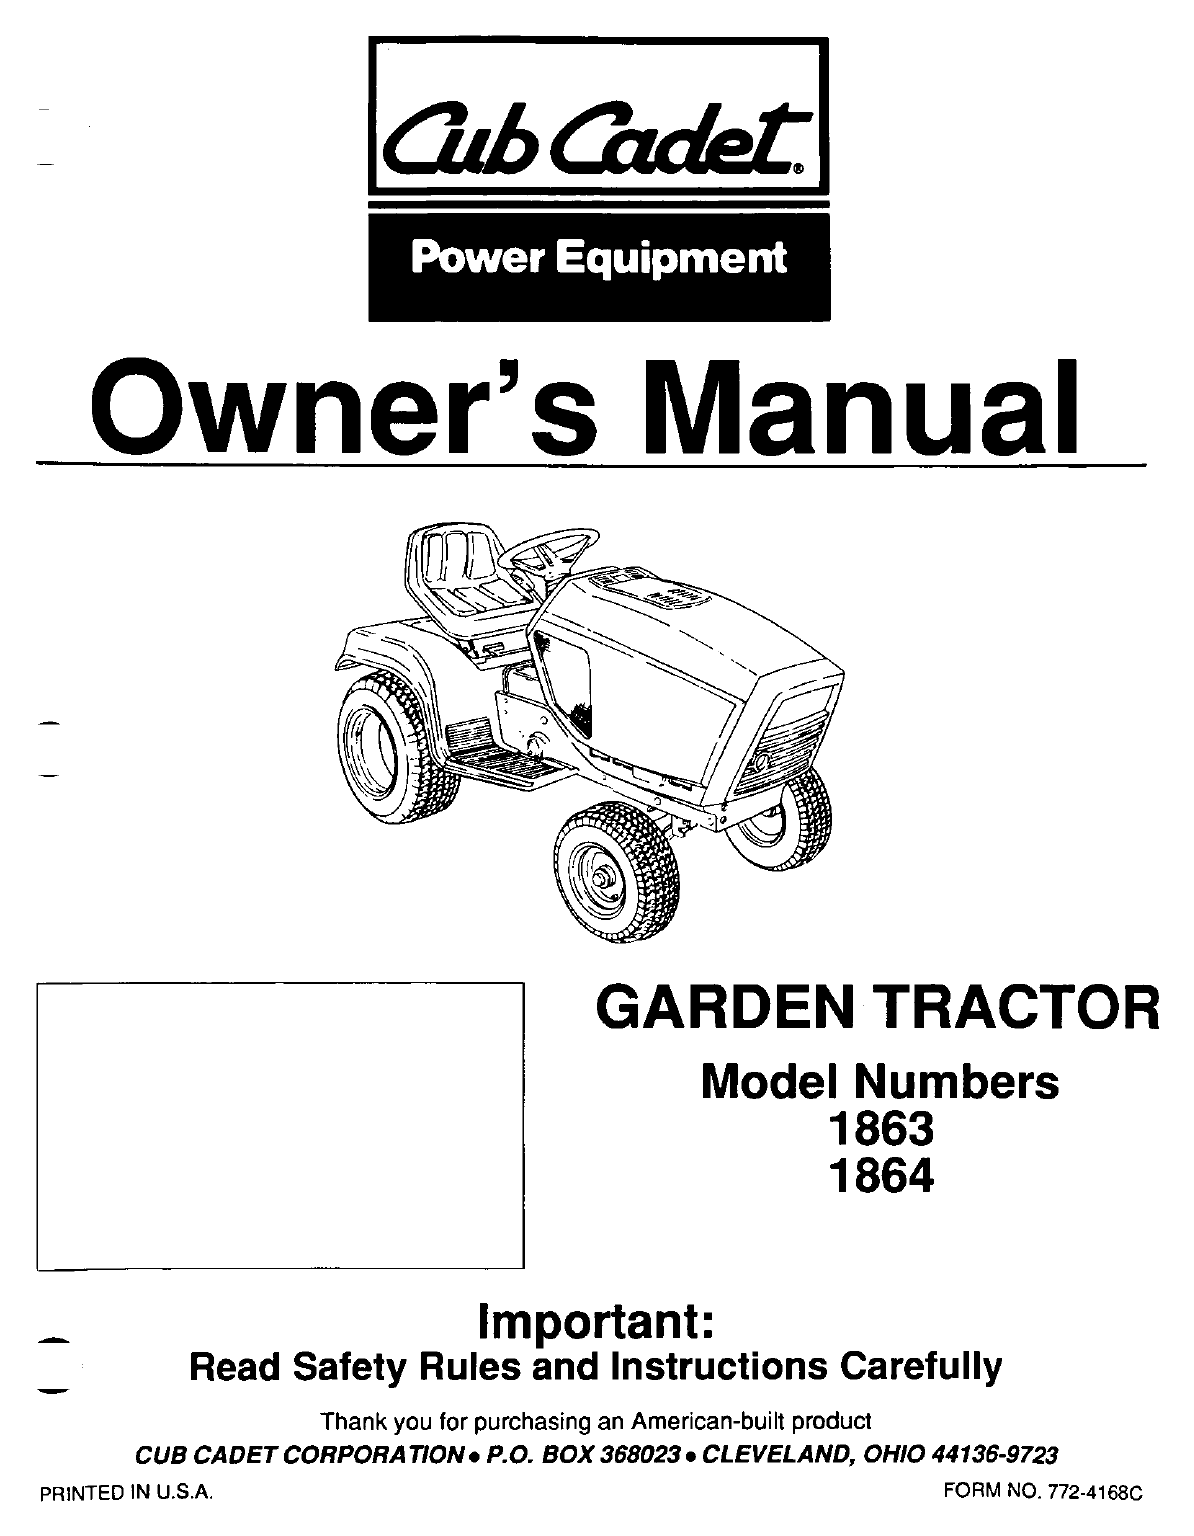 John Deere La145 Wiring Schematic in addition Ignition Switch Wiring Diagram For A Riding Lawn Mower further Husqvarna Riding Mower Belt Diagram further 265543 John Deere L G Belt Routing Guide also Fuel System On A Ford Diesel Tractor Diagram. on scotts wiring diagram